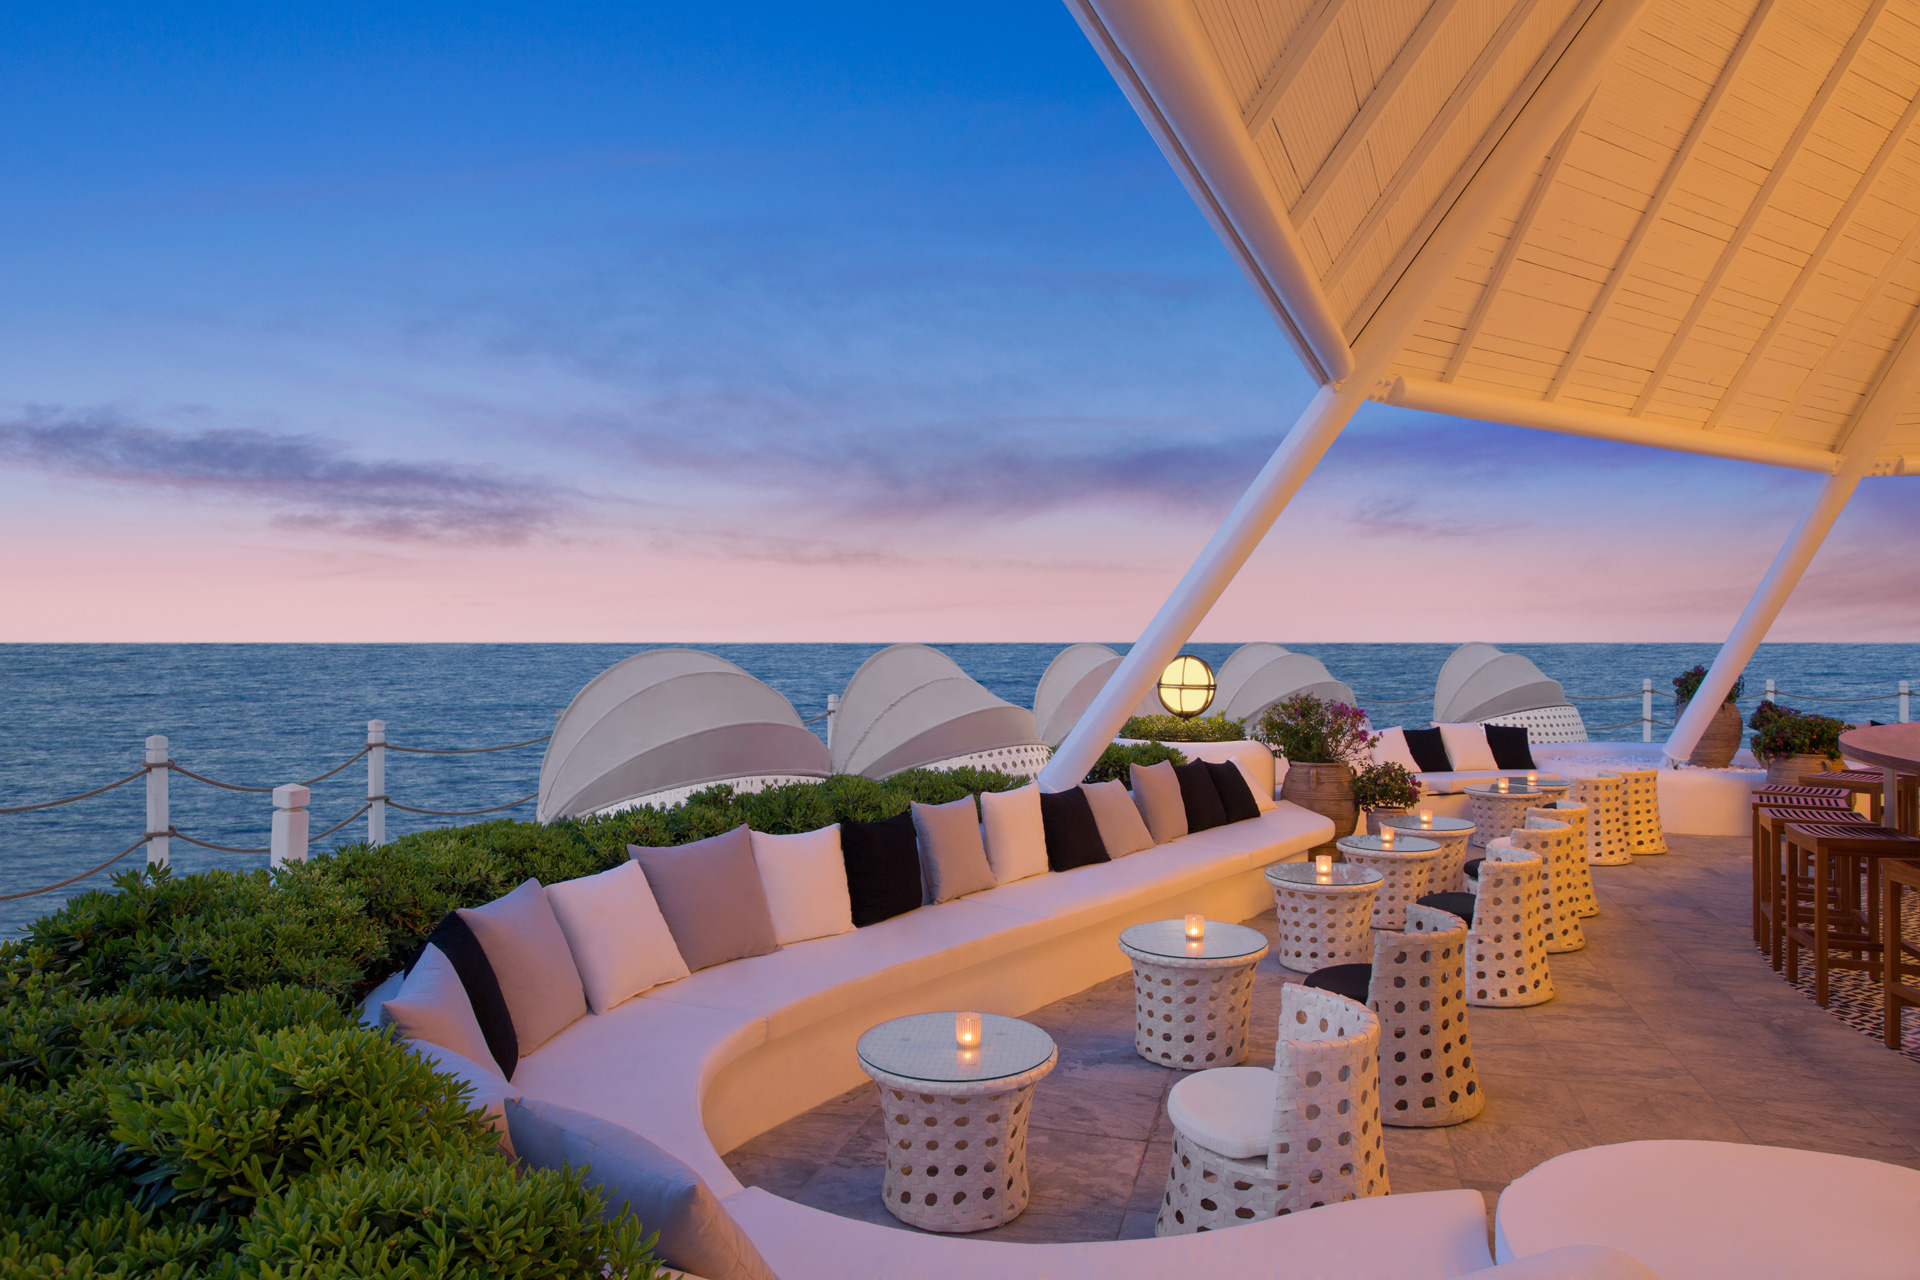 Renaissance Antalya Beach Resort | Sunset Lounge